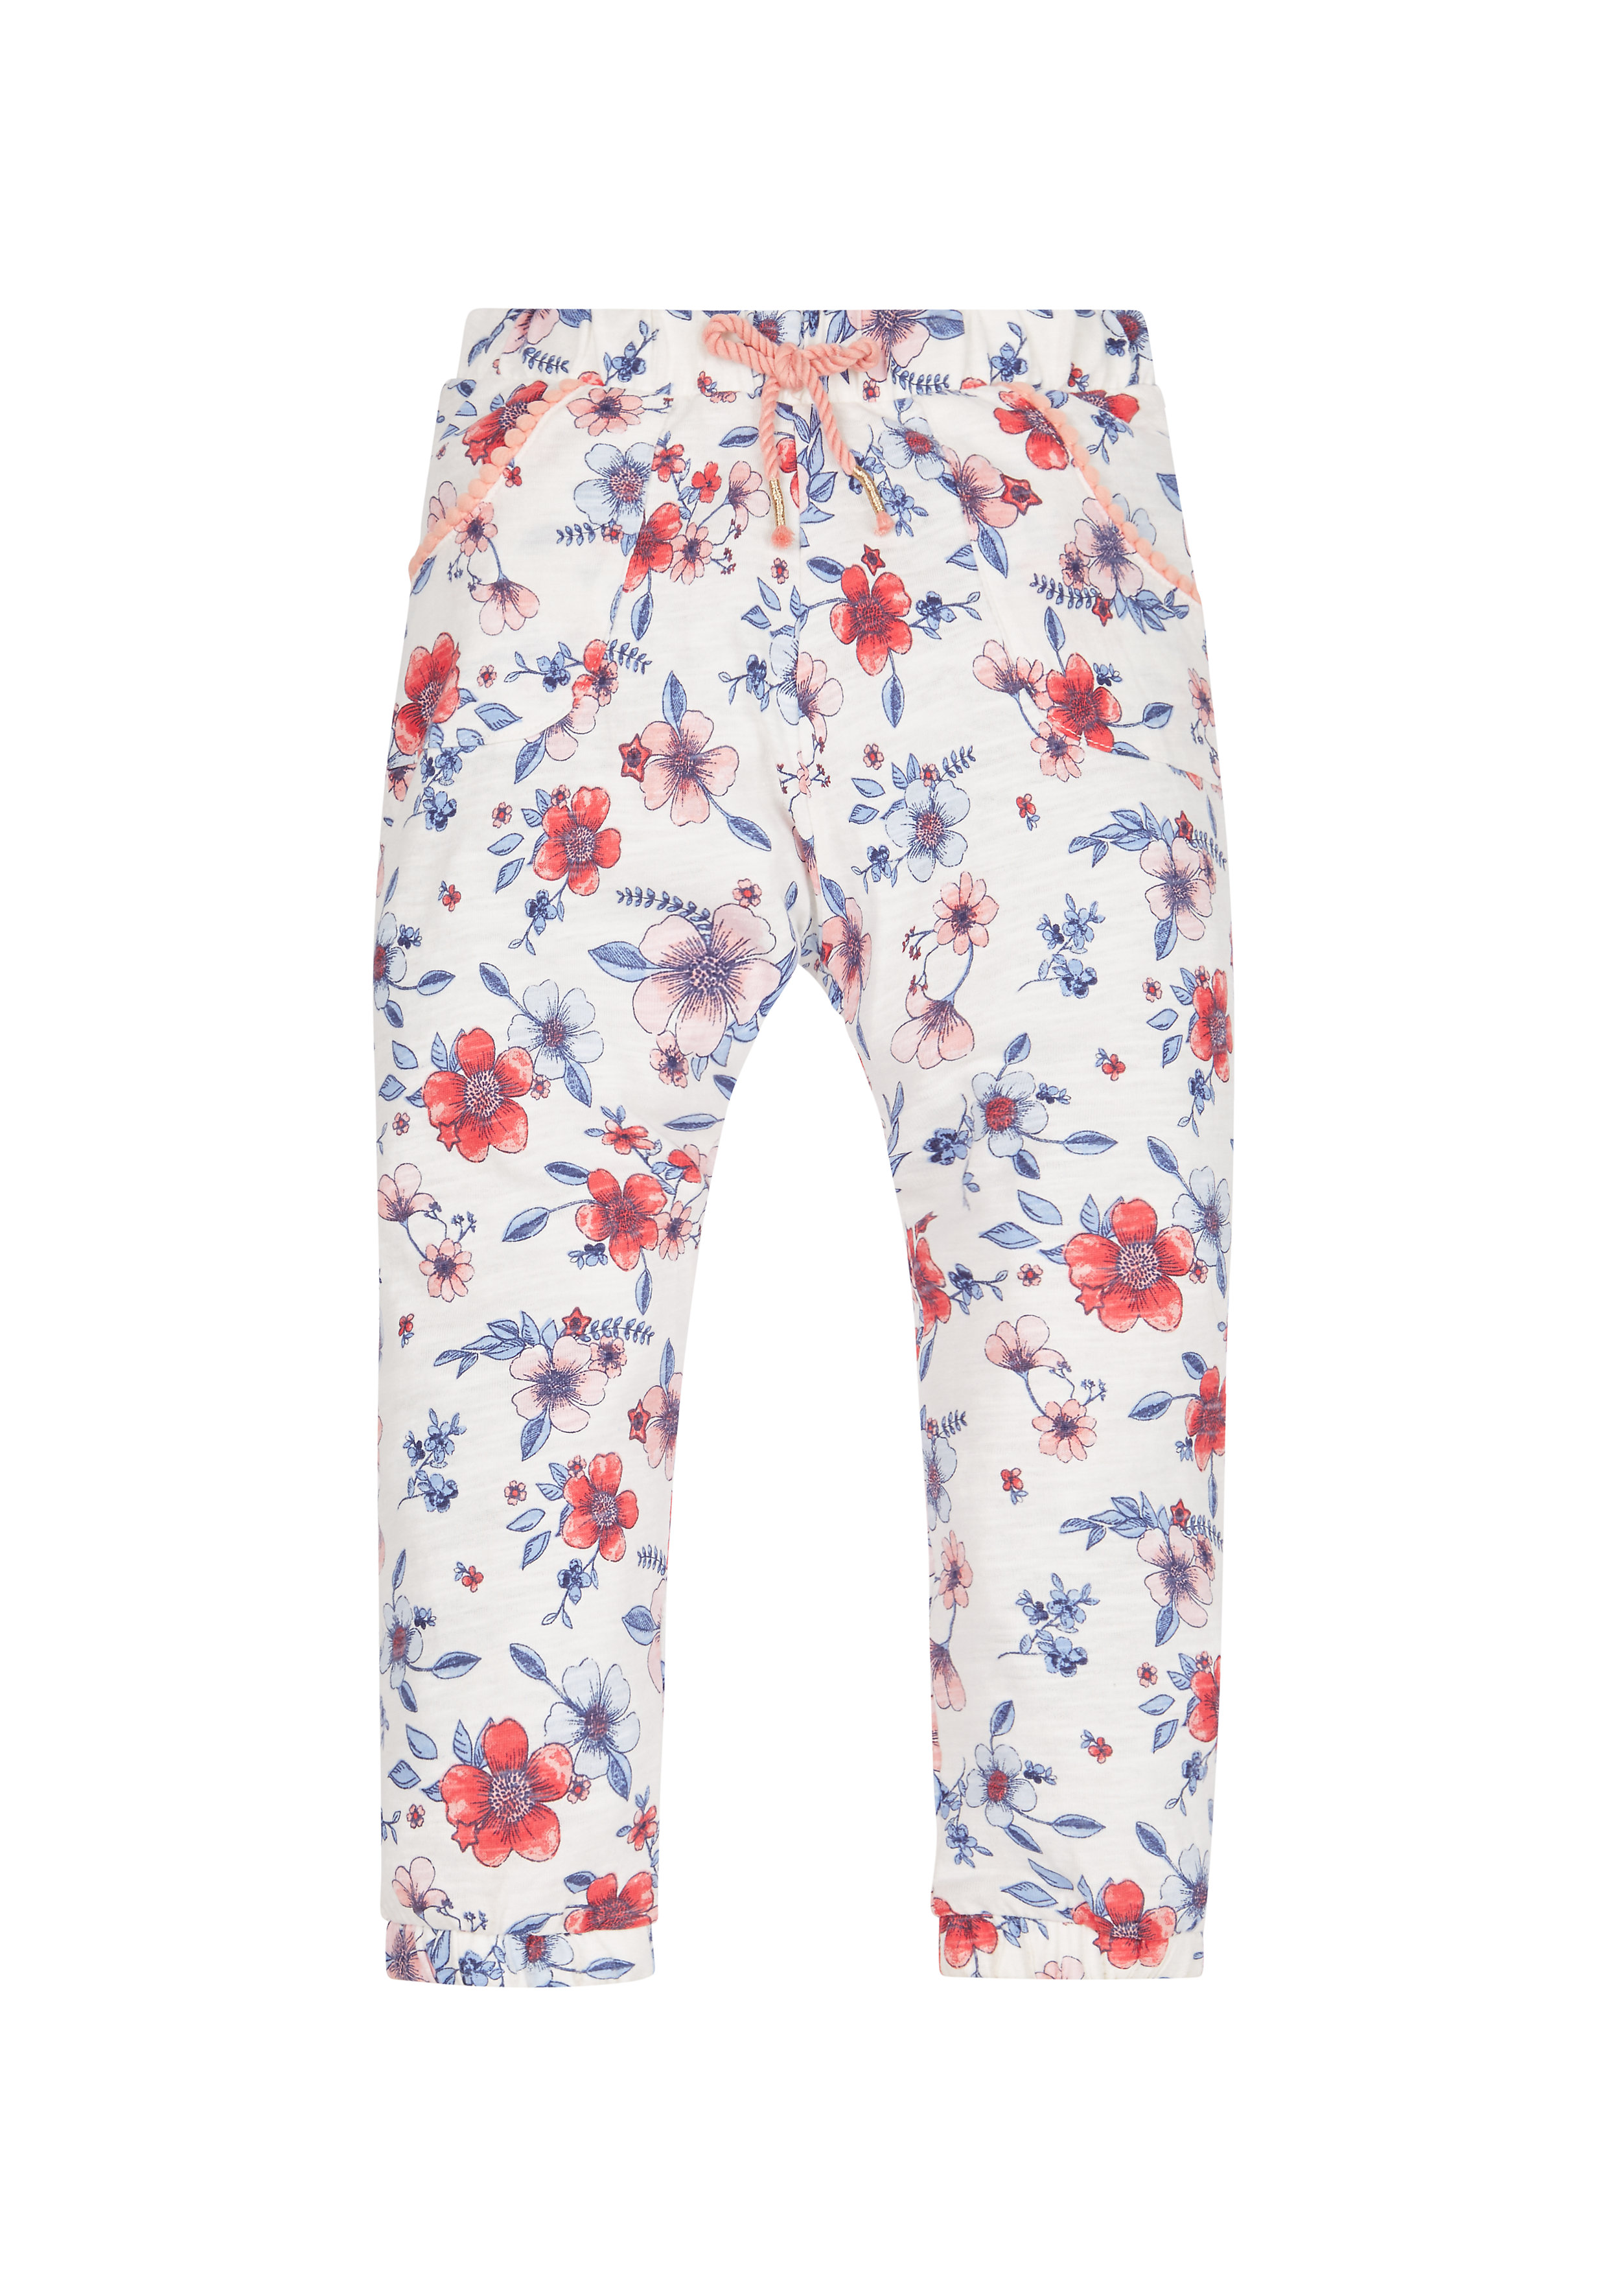 Mothercare | Girls Floral Hareem Trousers - White